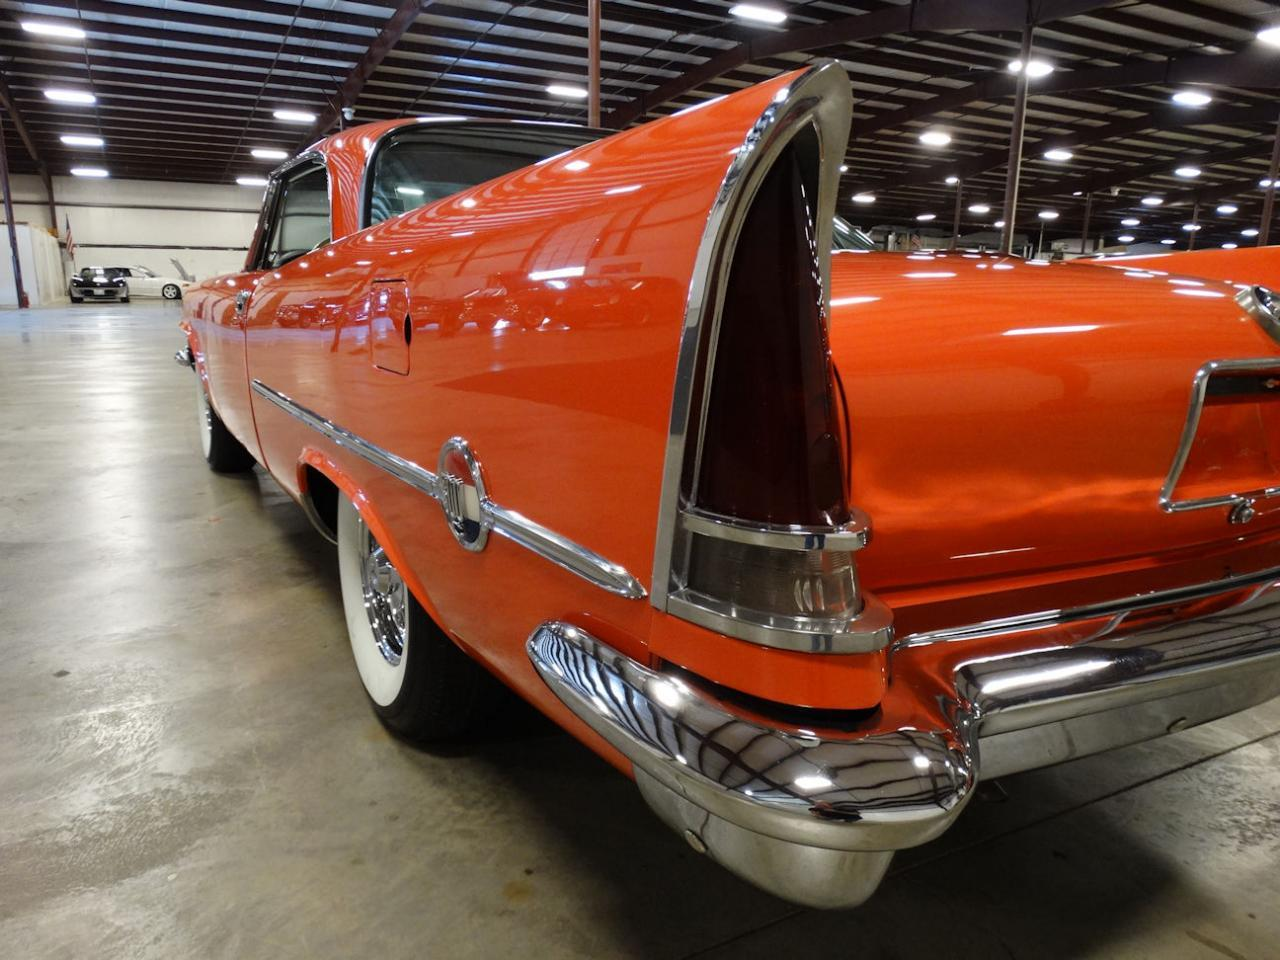 Large Picture of Classic '57 Chrysler 300 located in Indiana - $44,995.00 - MACC